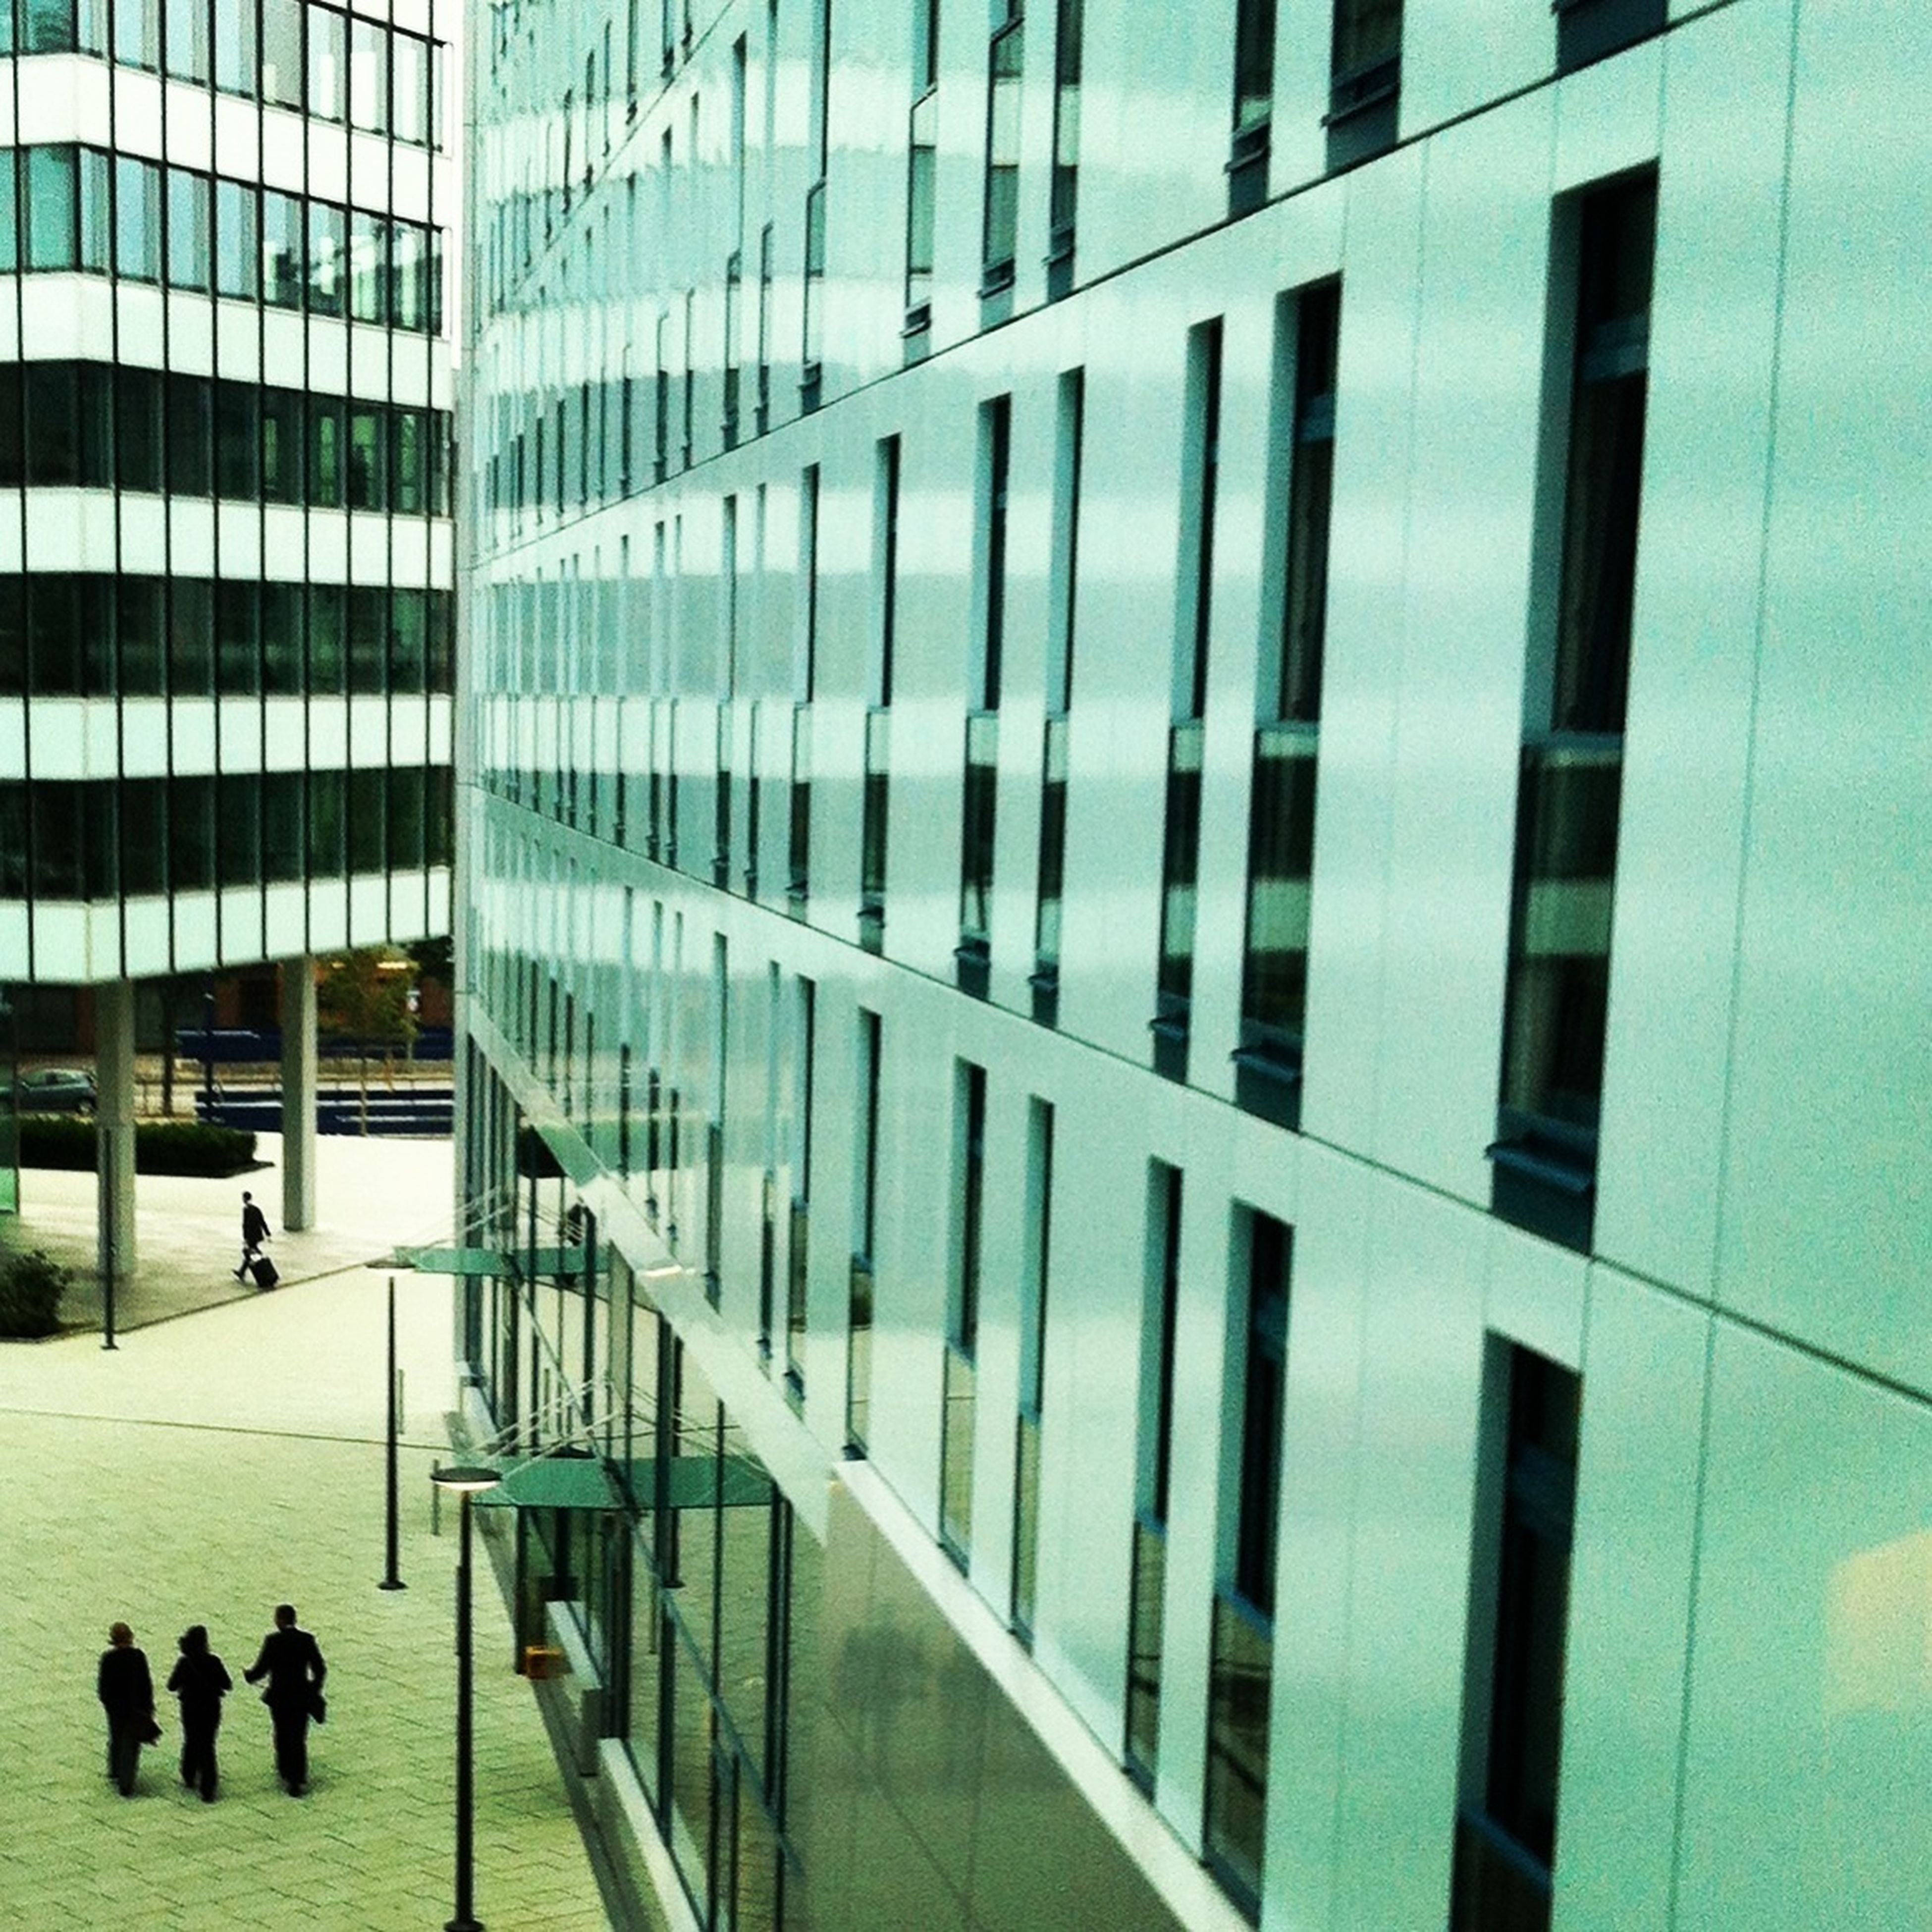 architecture, building exterior, built structure, city, modern, men, office building, building, walking, city life, glass - material, lifestyles, person, skyscraper, reflection, leisure activity, window, day, large group of people